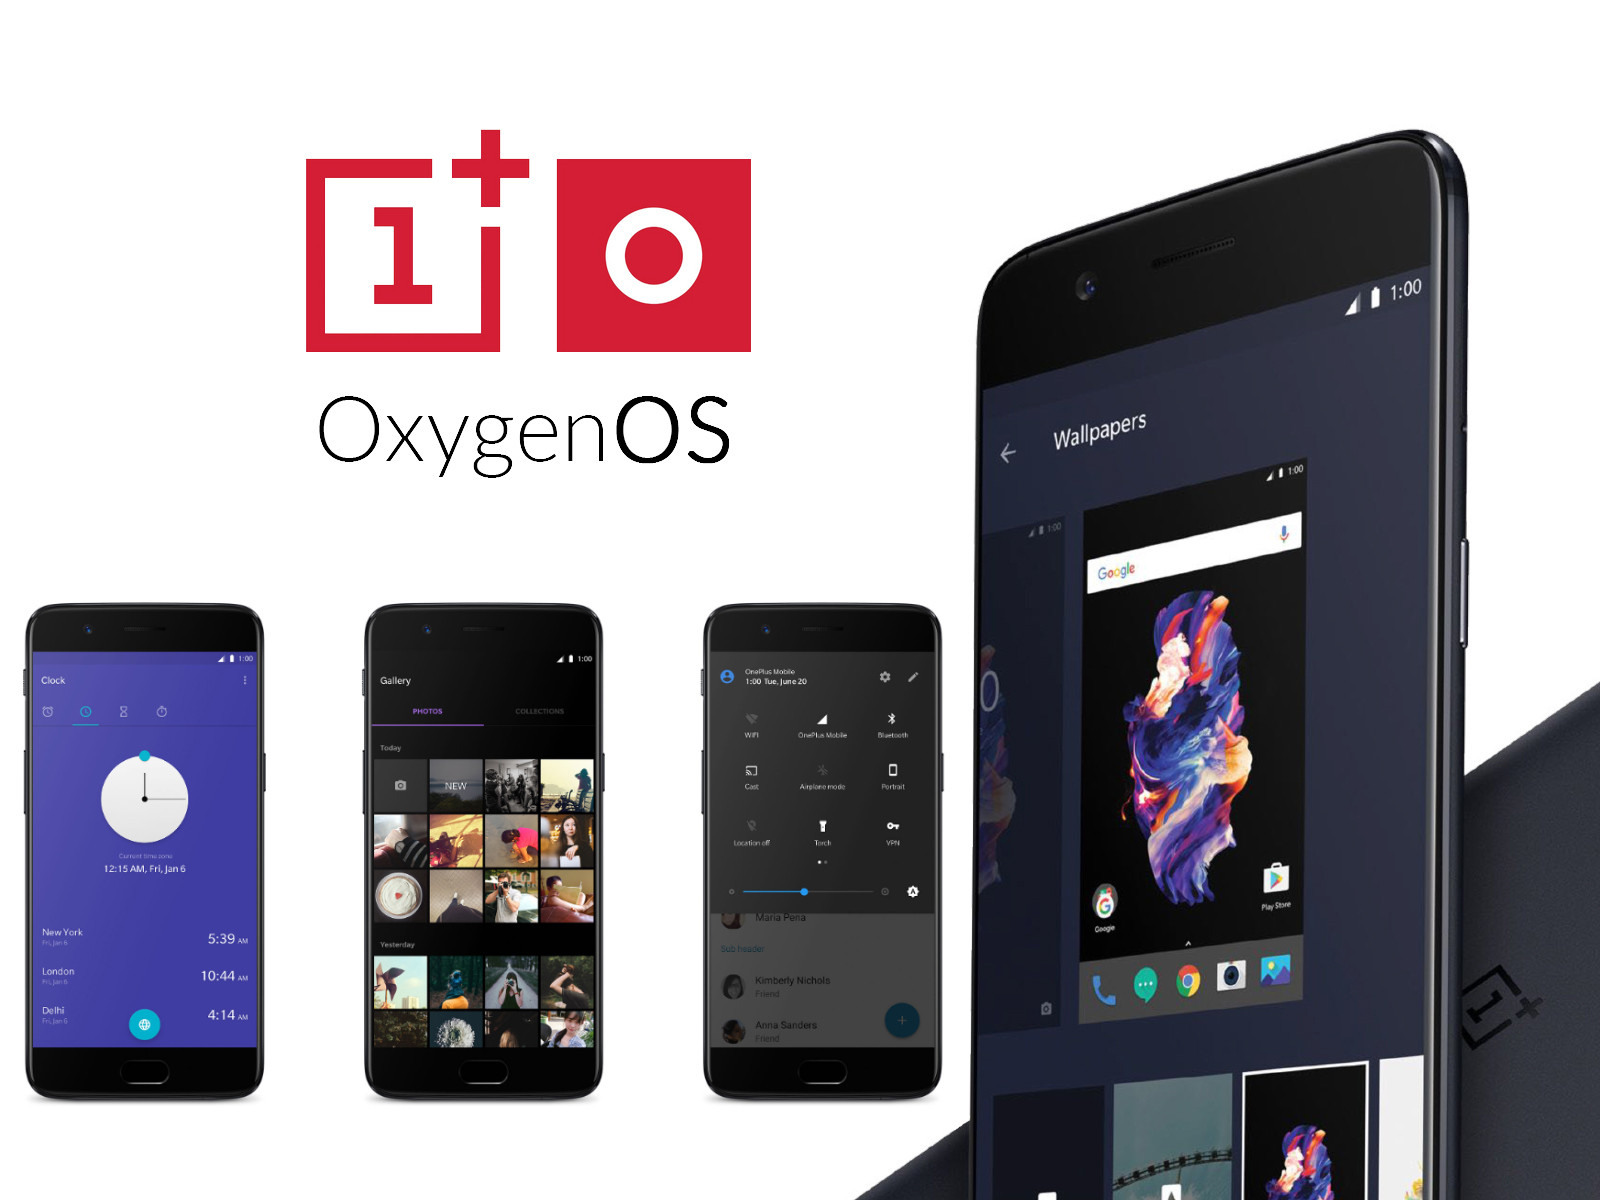 1498027065_a-more-refined-oxygen-os-based-on-android-7.1.1.jpg